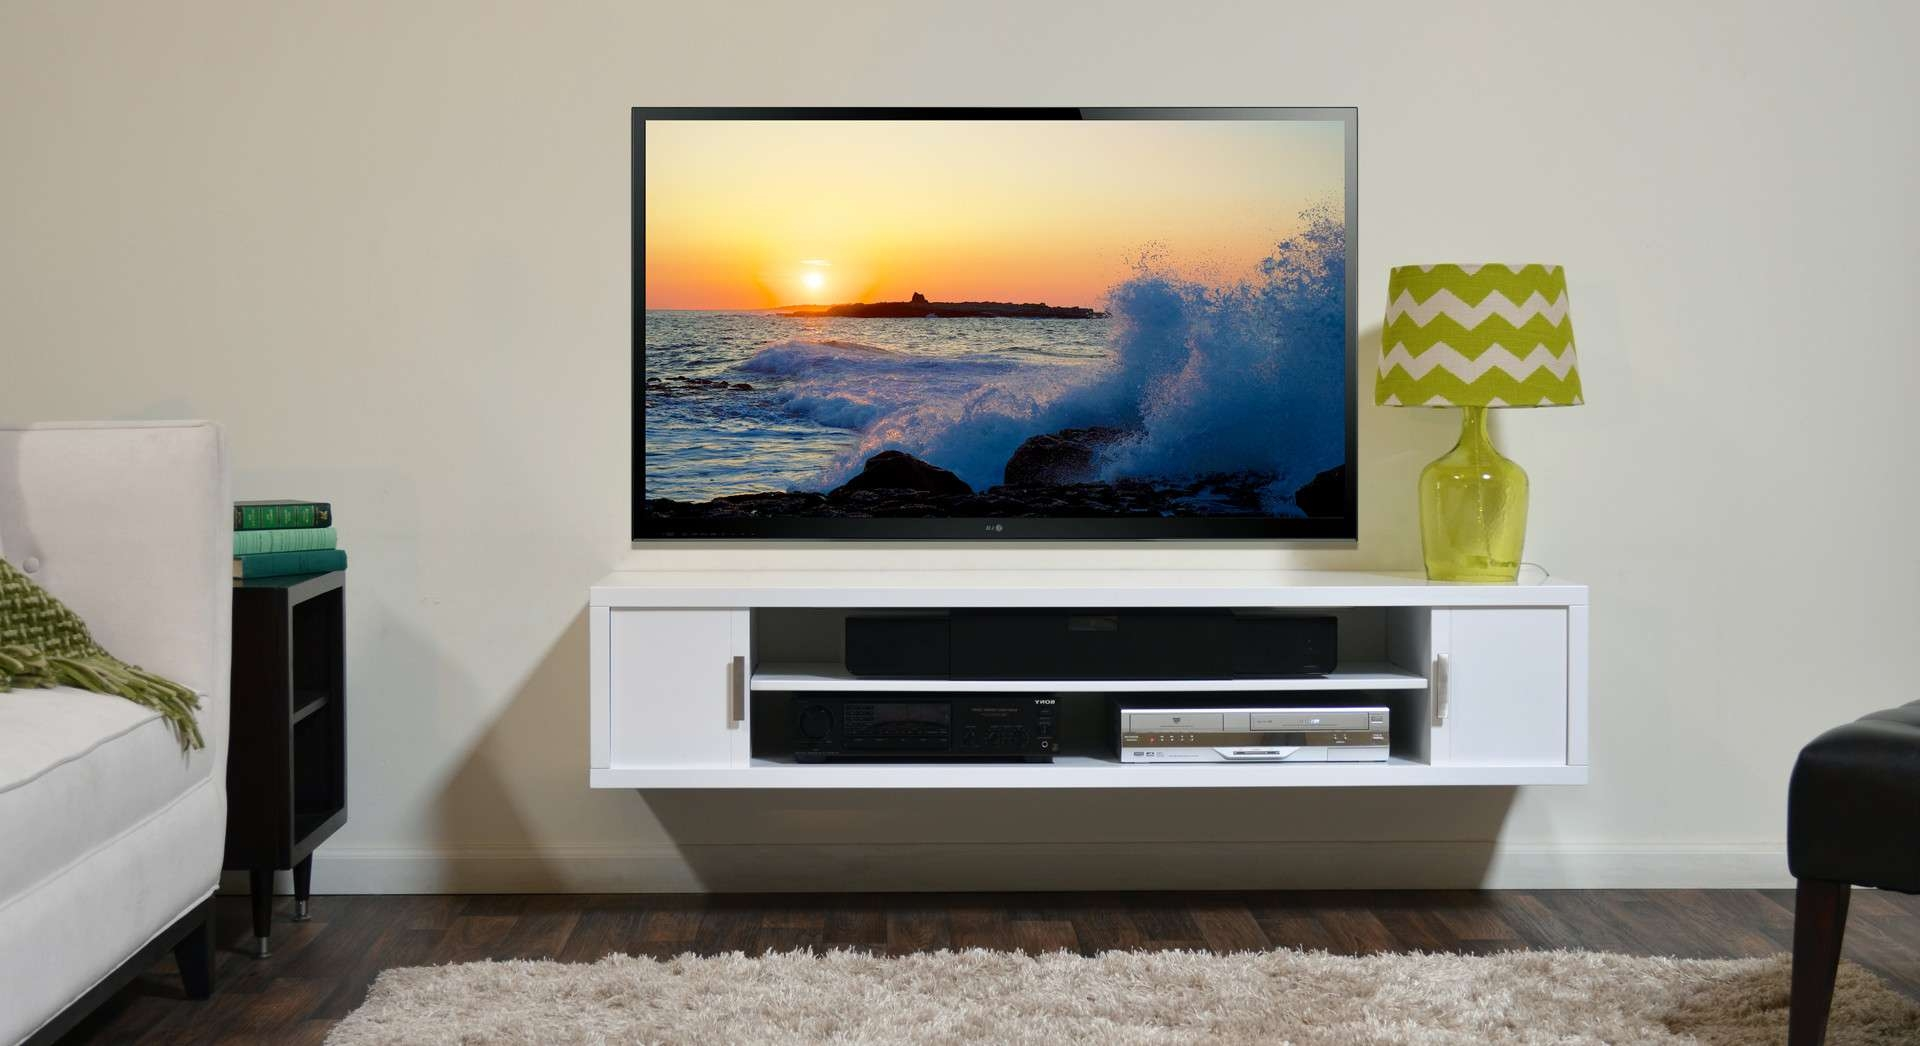 To Wall Mounted Tv Stand – Home Designing With Regard To Modern Wall Mount Tv Stands (View 2 of 15)